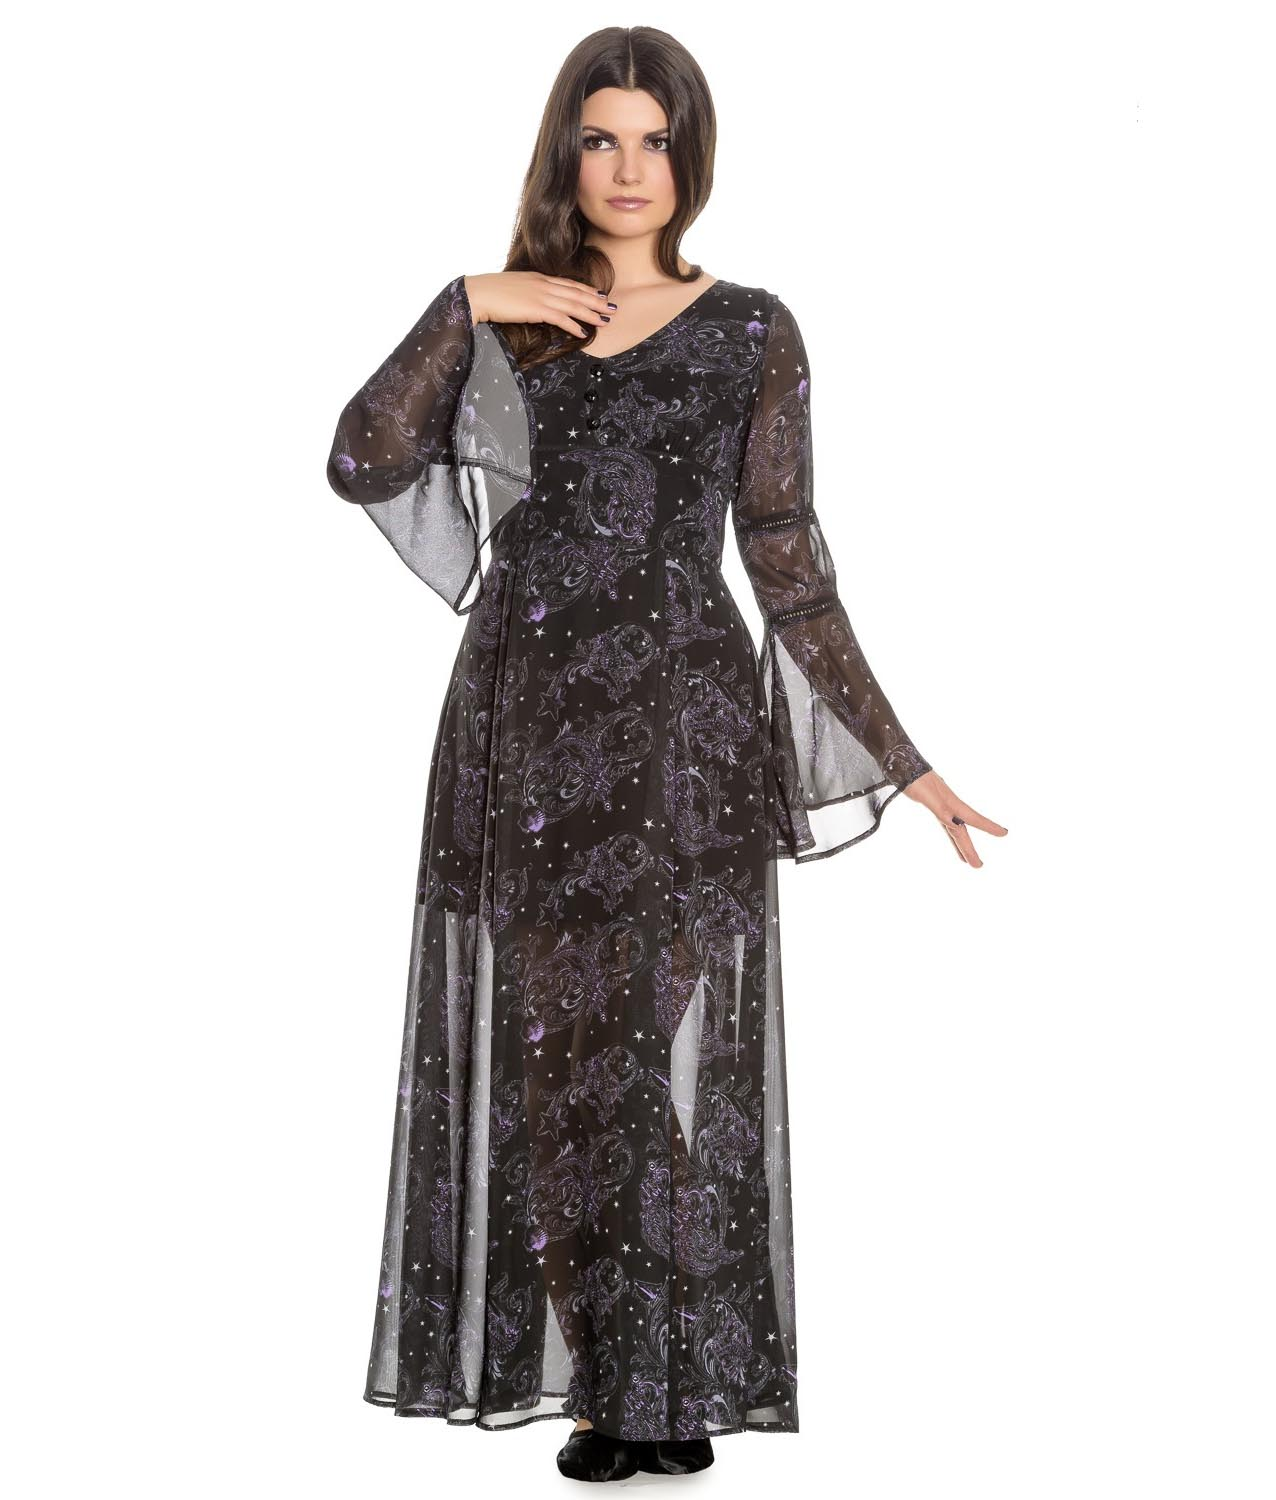 Hell-Bunny-Spin-Doctor-Goth-Maxi-Dress-DARK-SEA-Mermaid-Skeletons-All-Sizes thumbnail 11